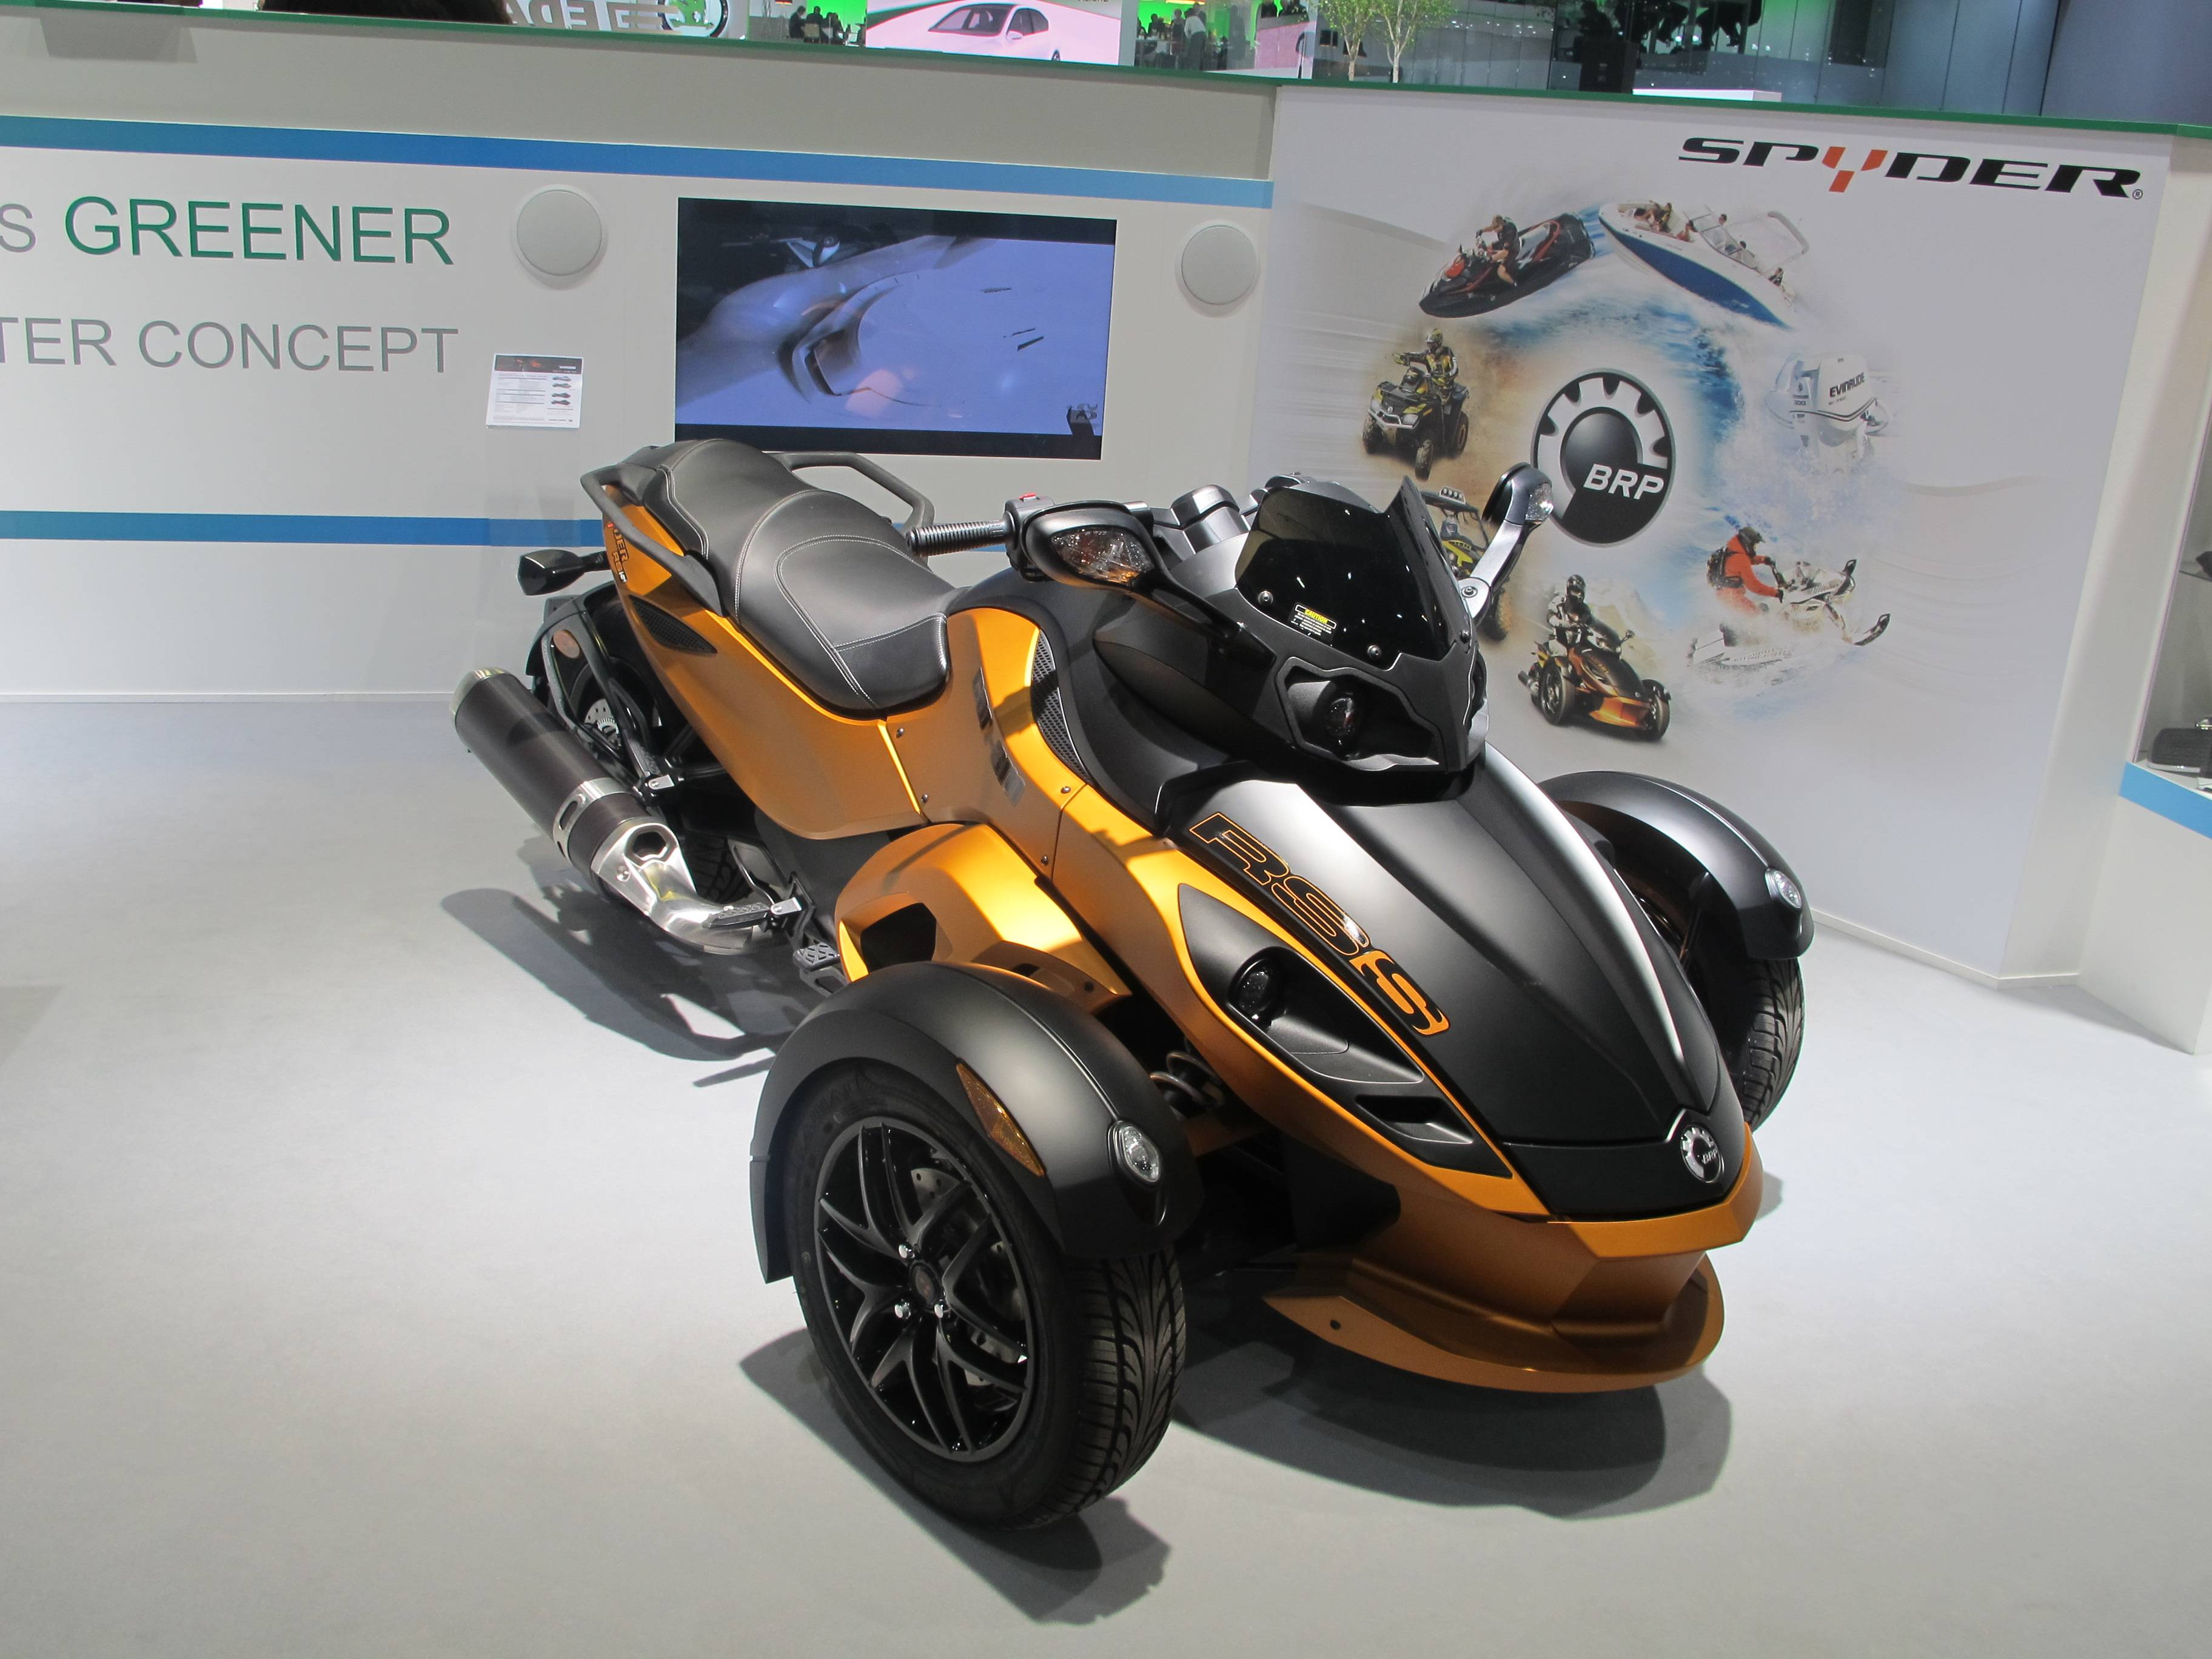 Geneva Motor Show - Can-Am concept HEV (hybrid electric vehicle) Spyder